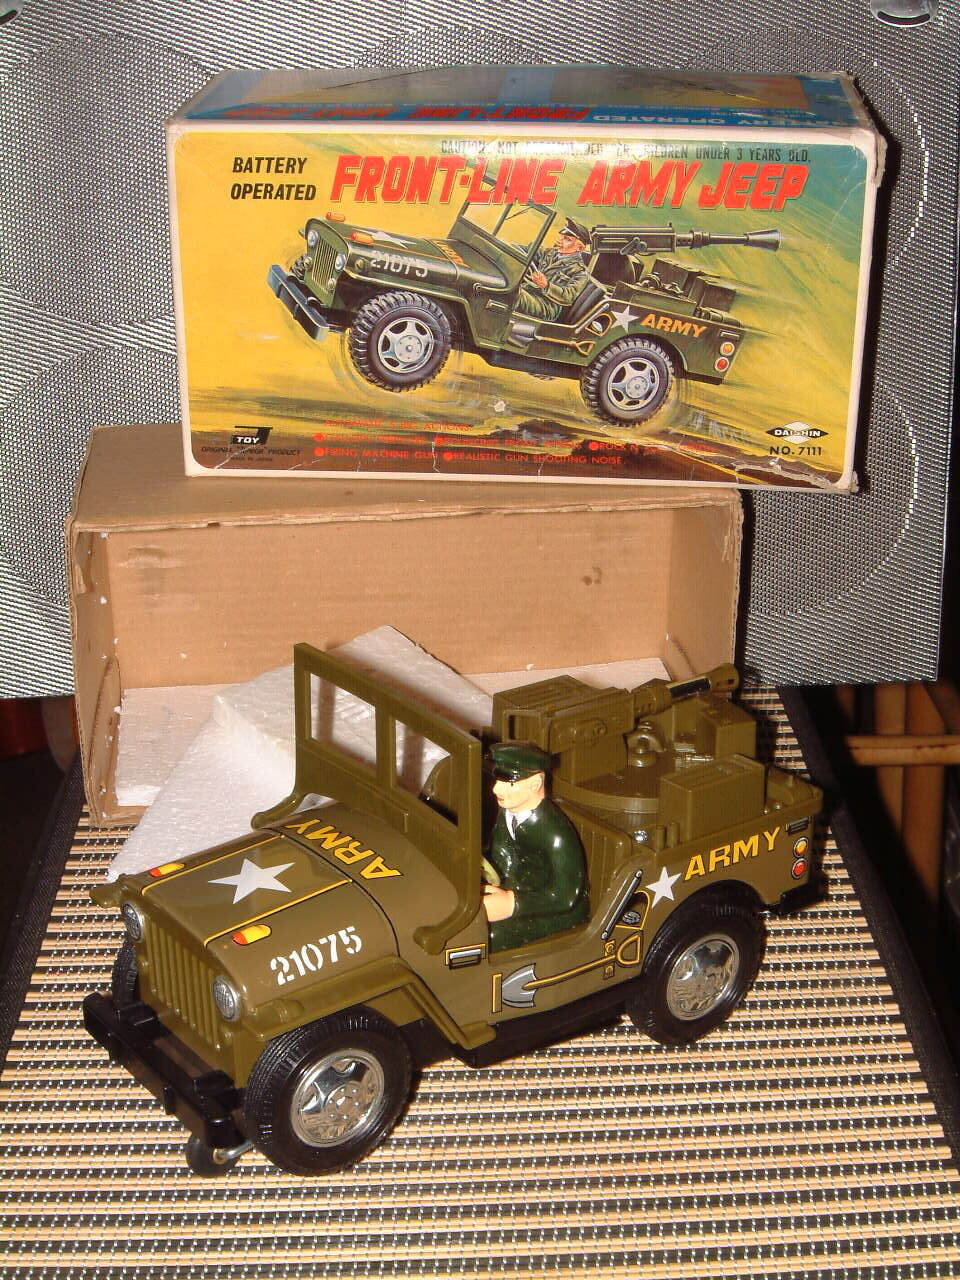 DAISHIN FRONT-LINE ARMY JEEP, BATTERY OPERATED 100% FULLY FUNCTIONAL W BOX